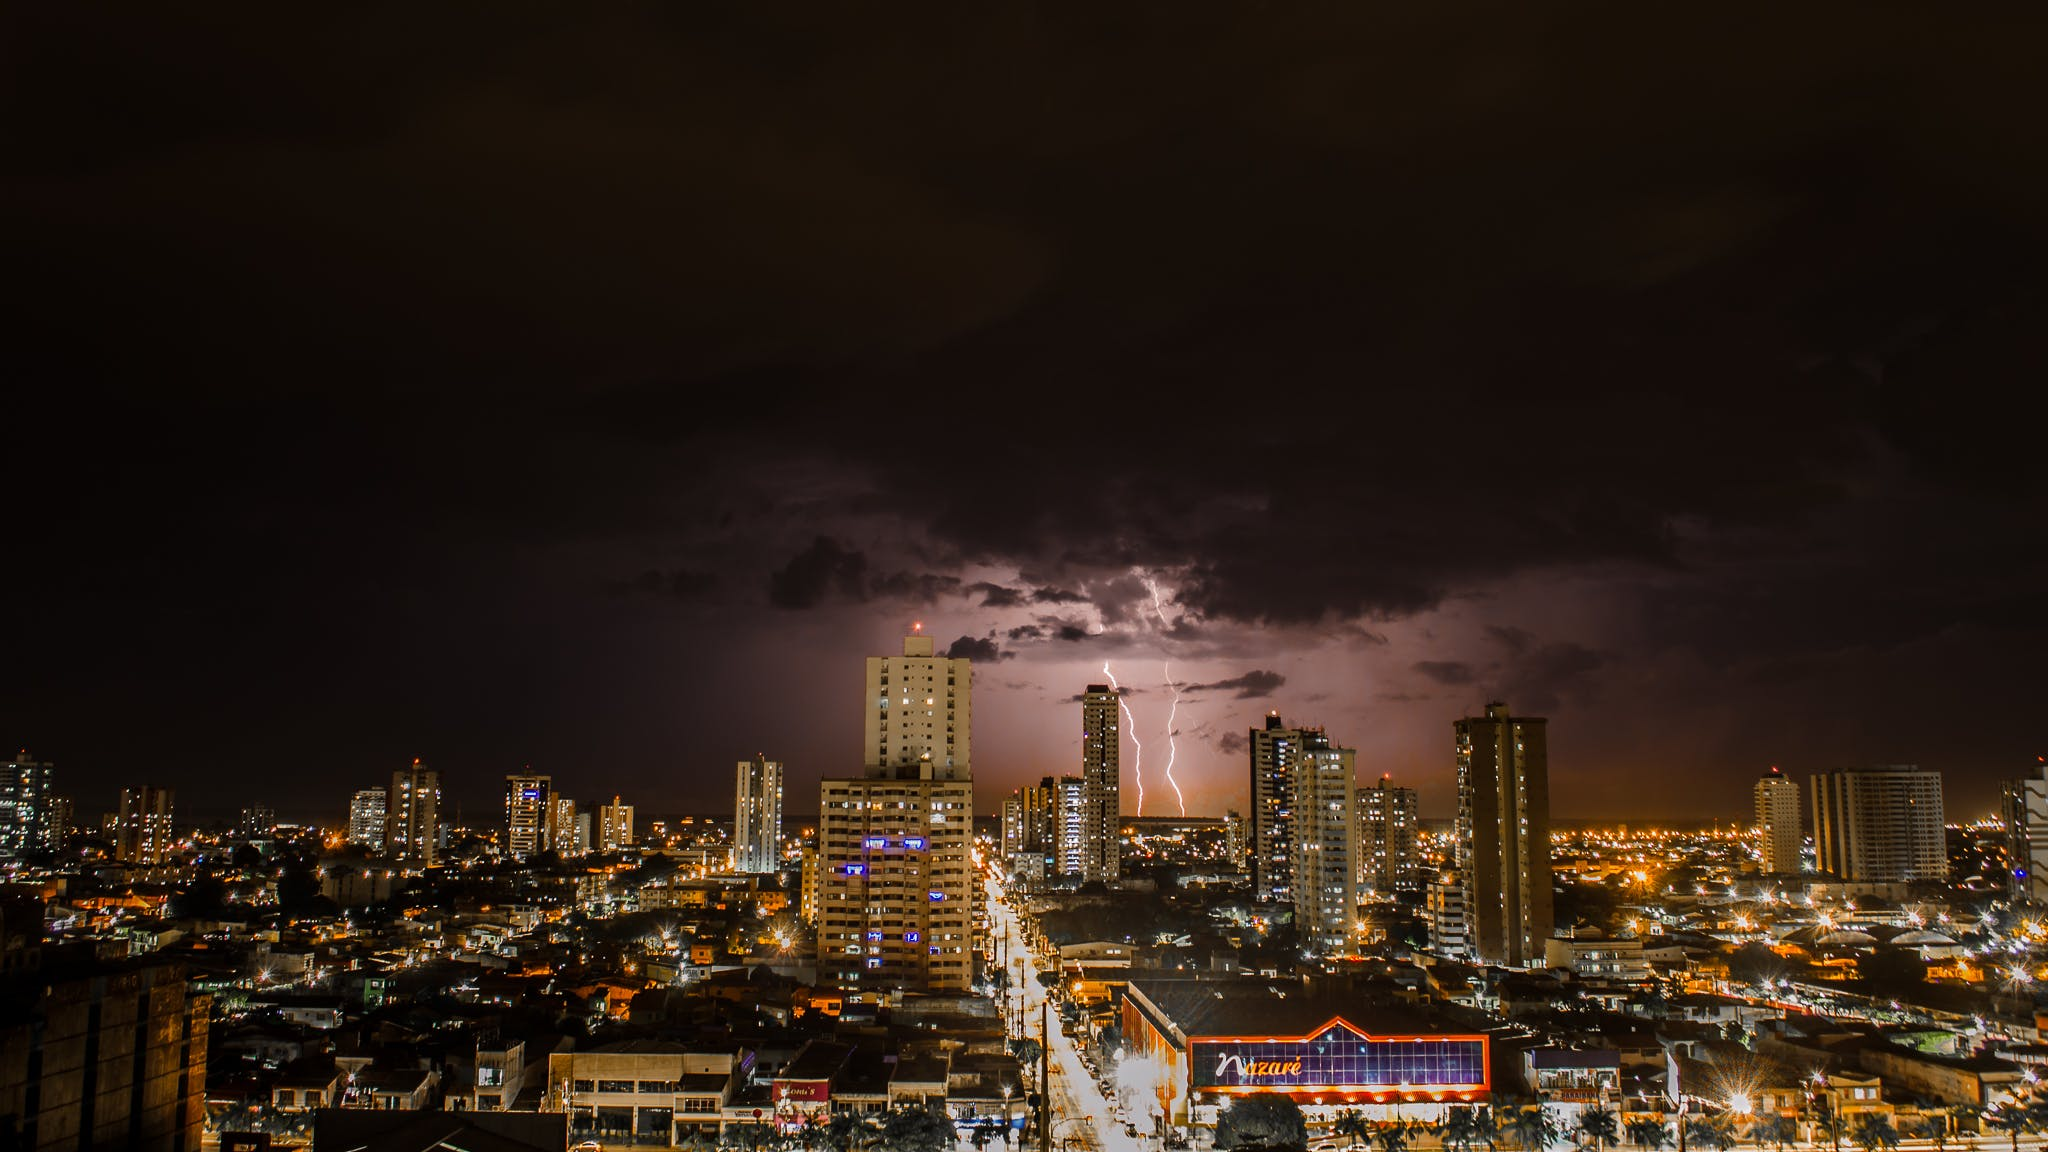 Thunderstorms Above City during Night Time